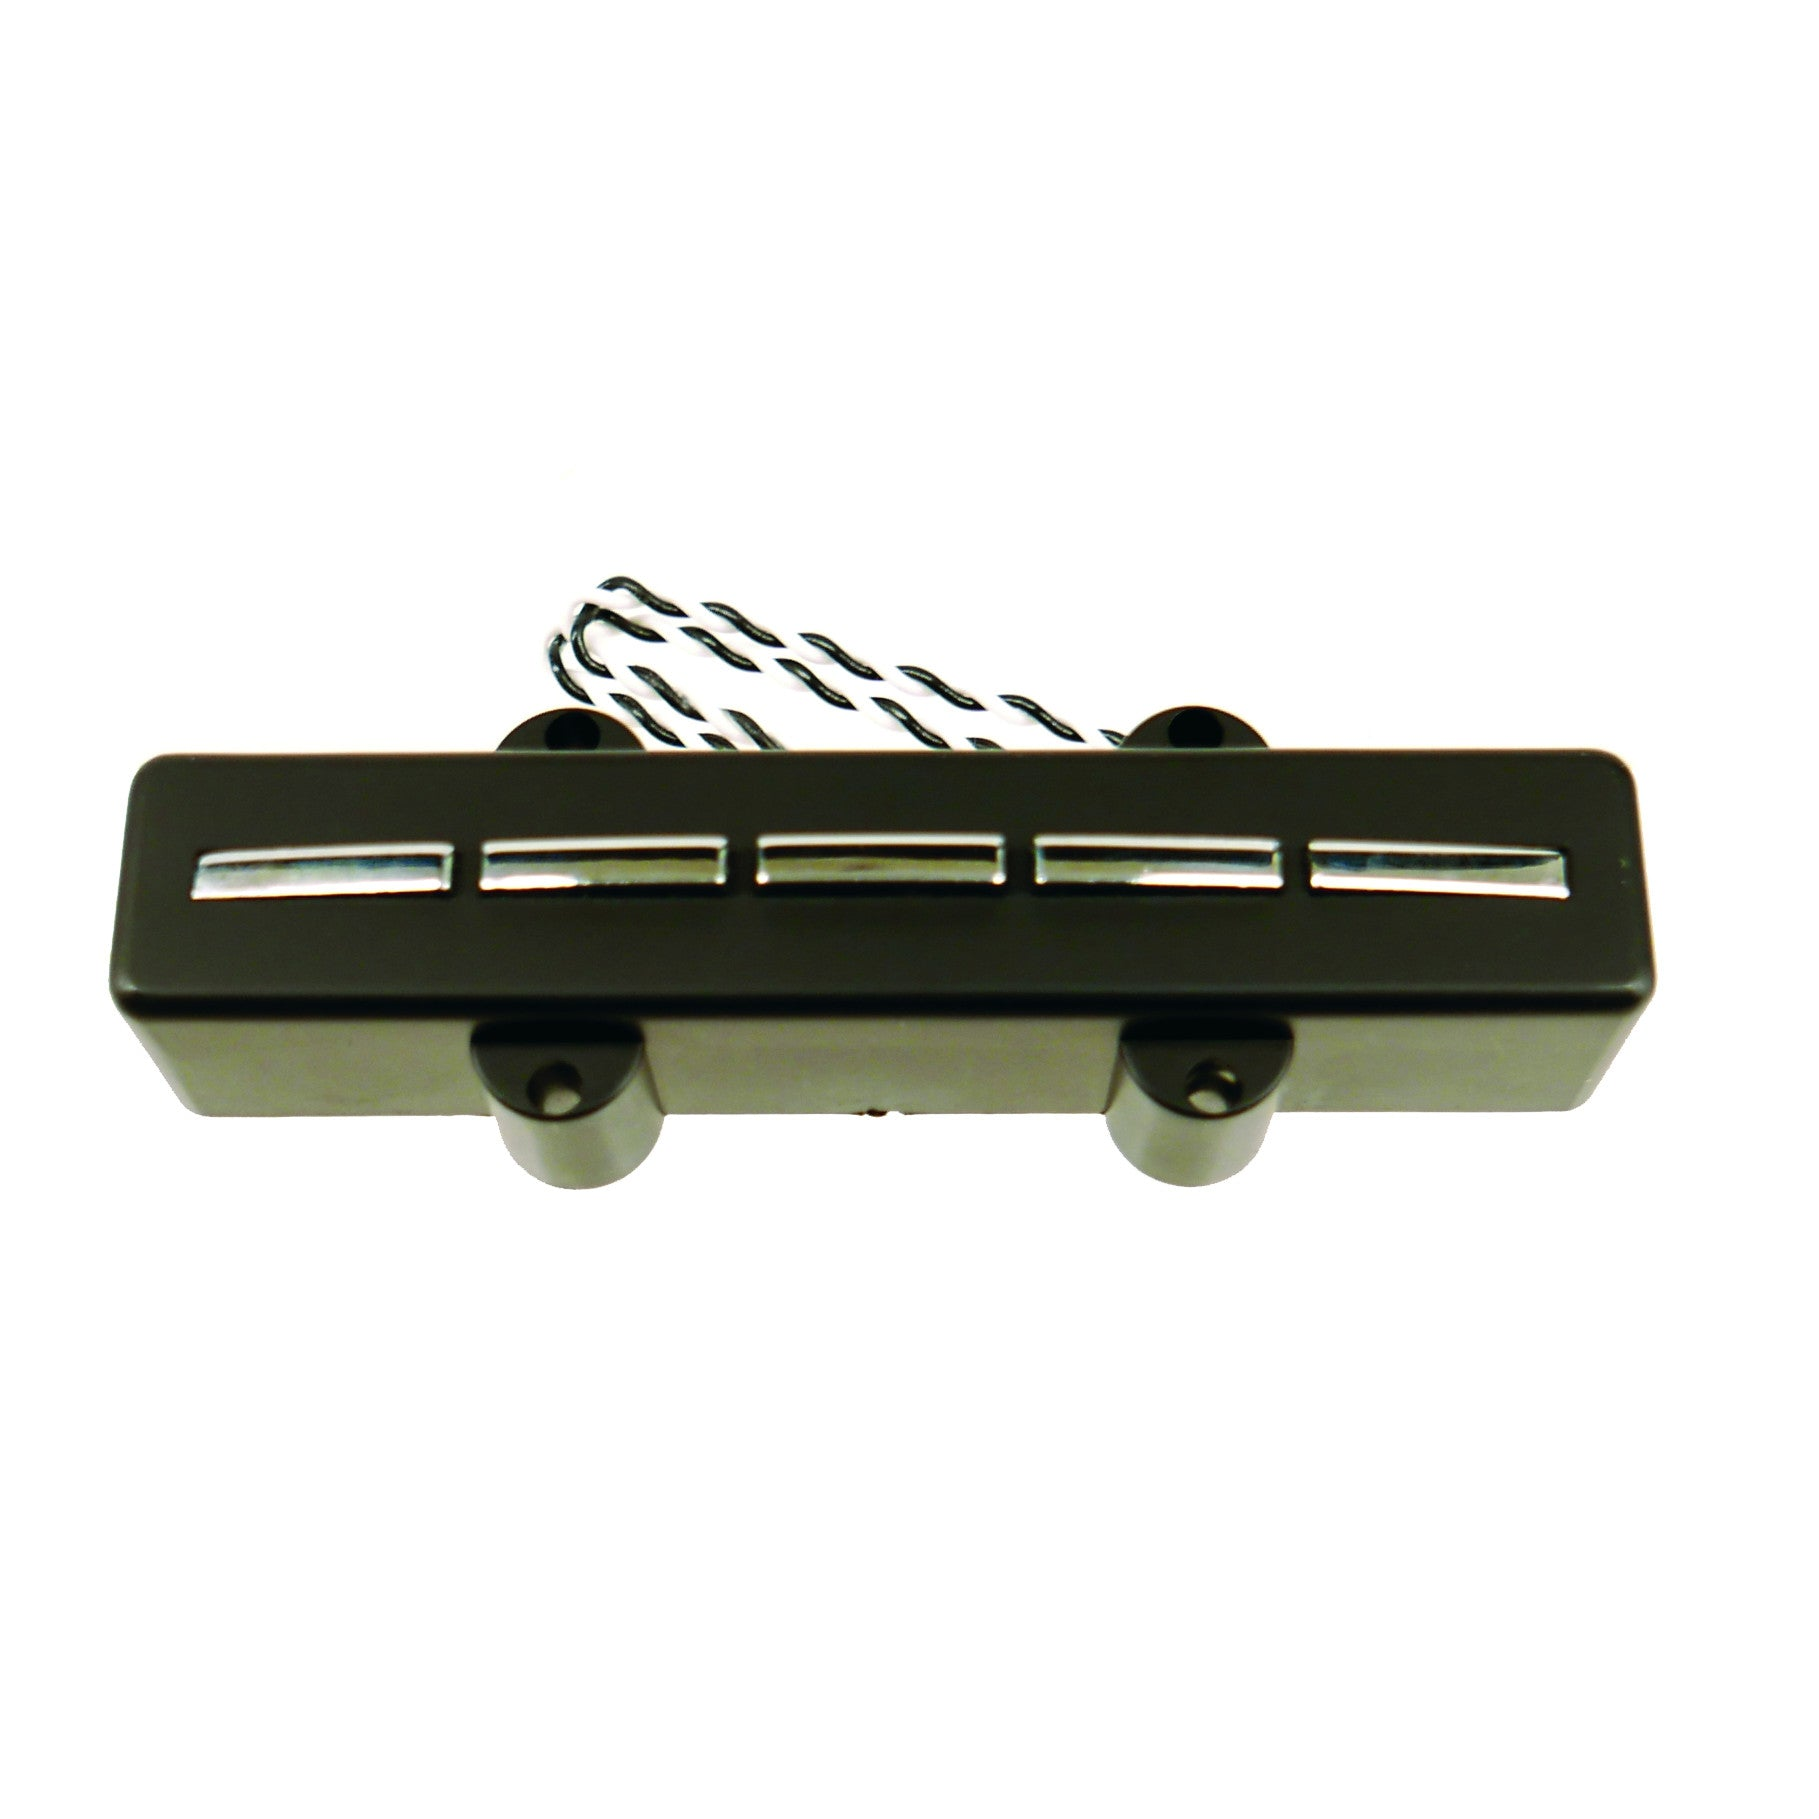 Nordstrand 5 String Jazz Bass Pickups Big J-Blade Front